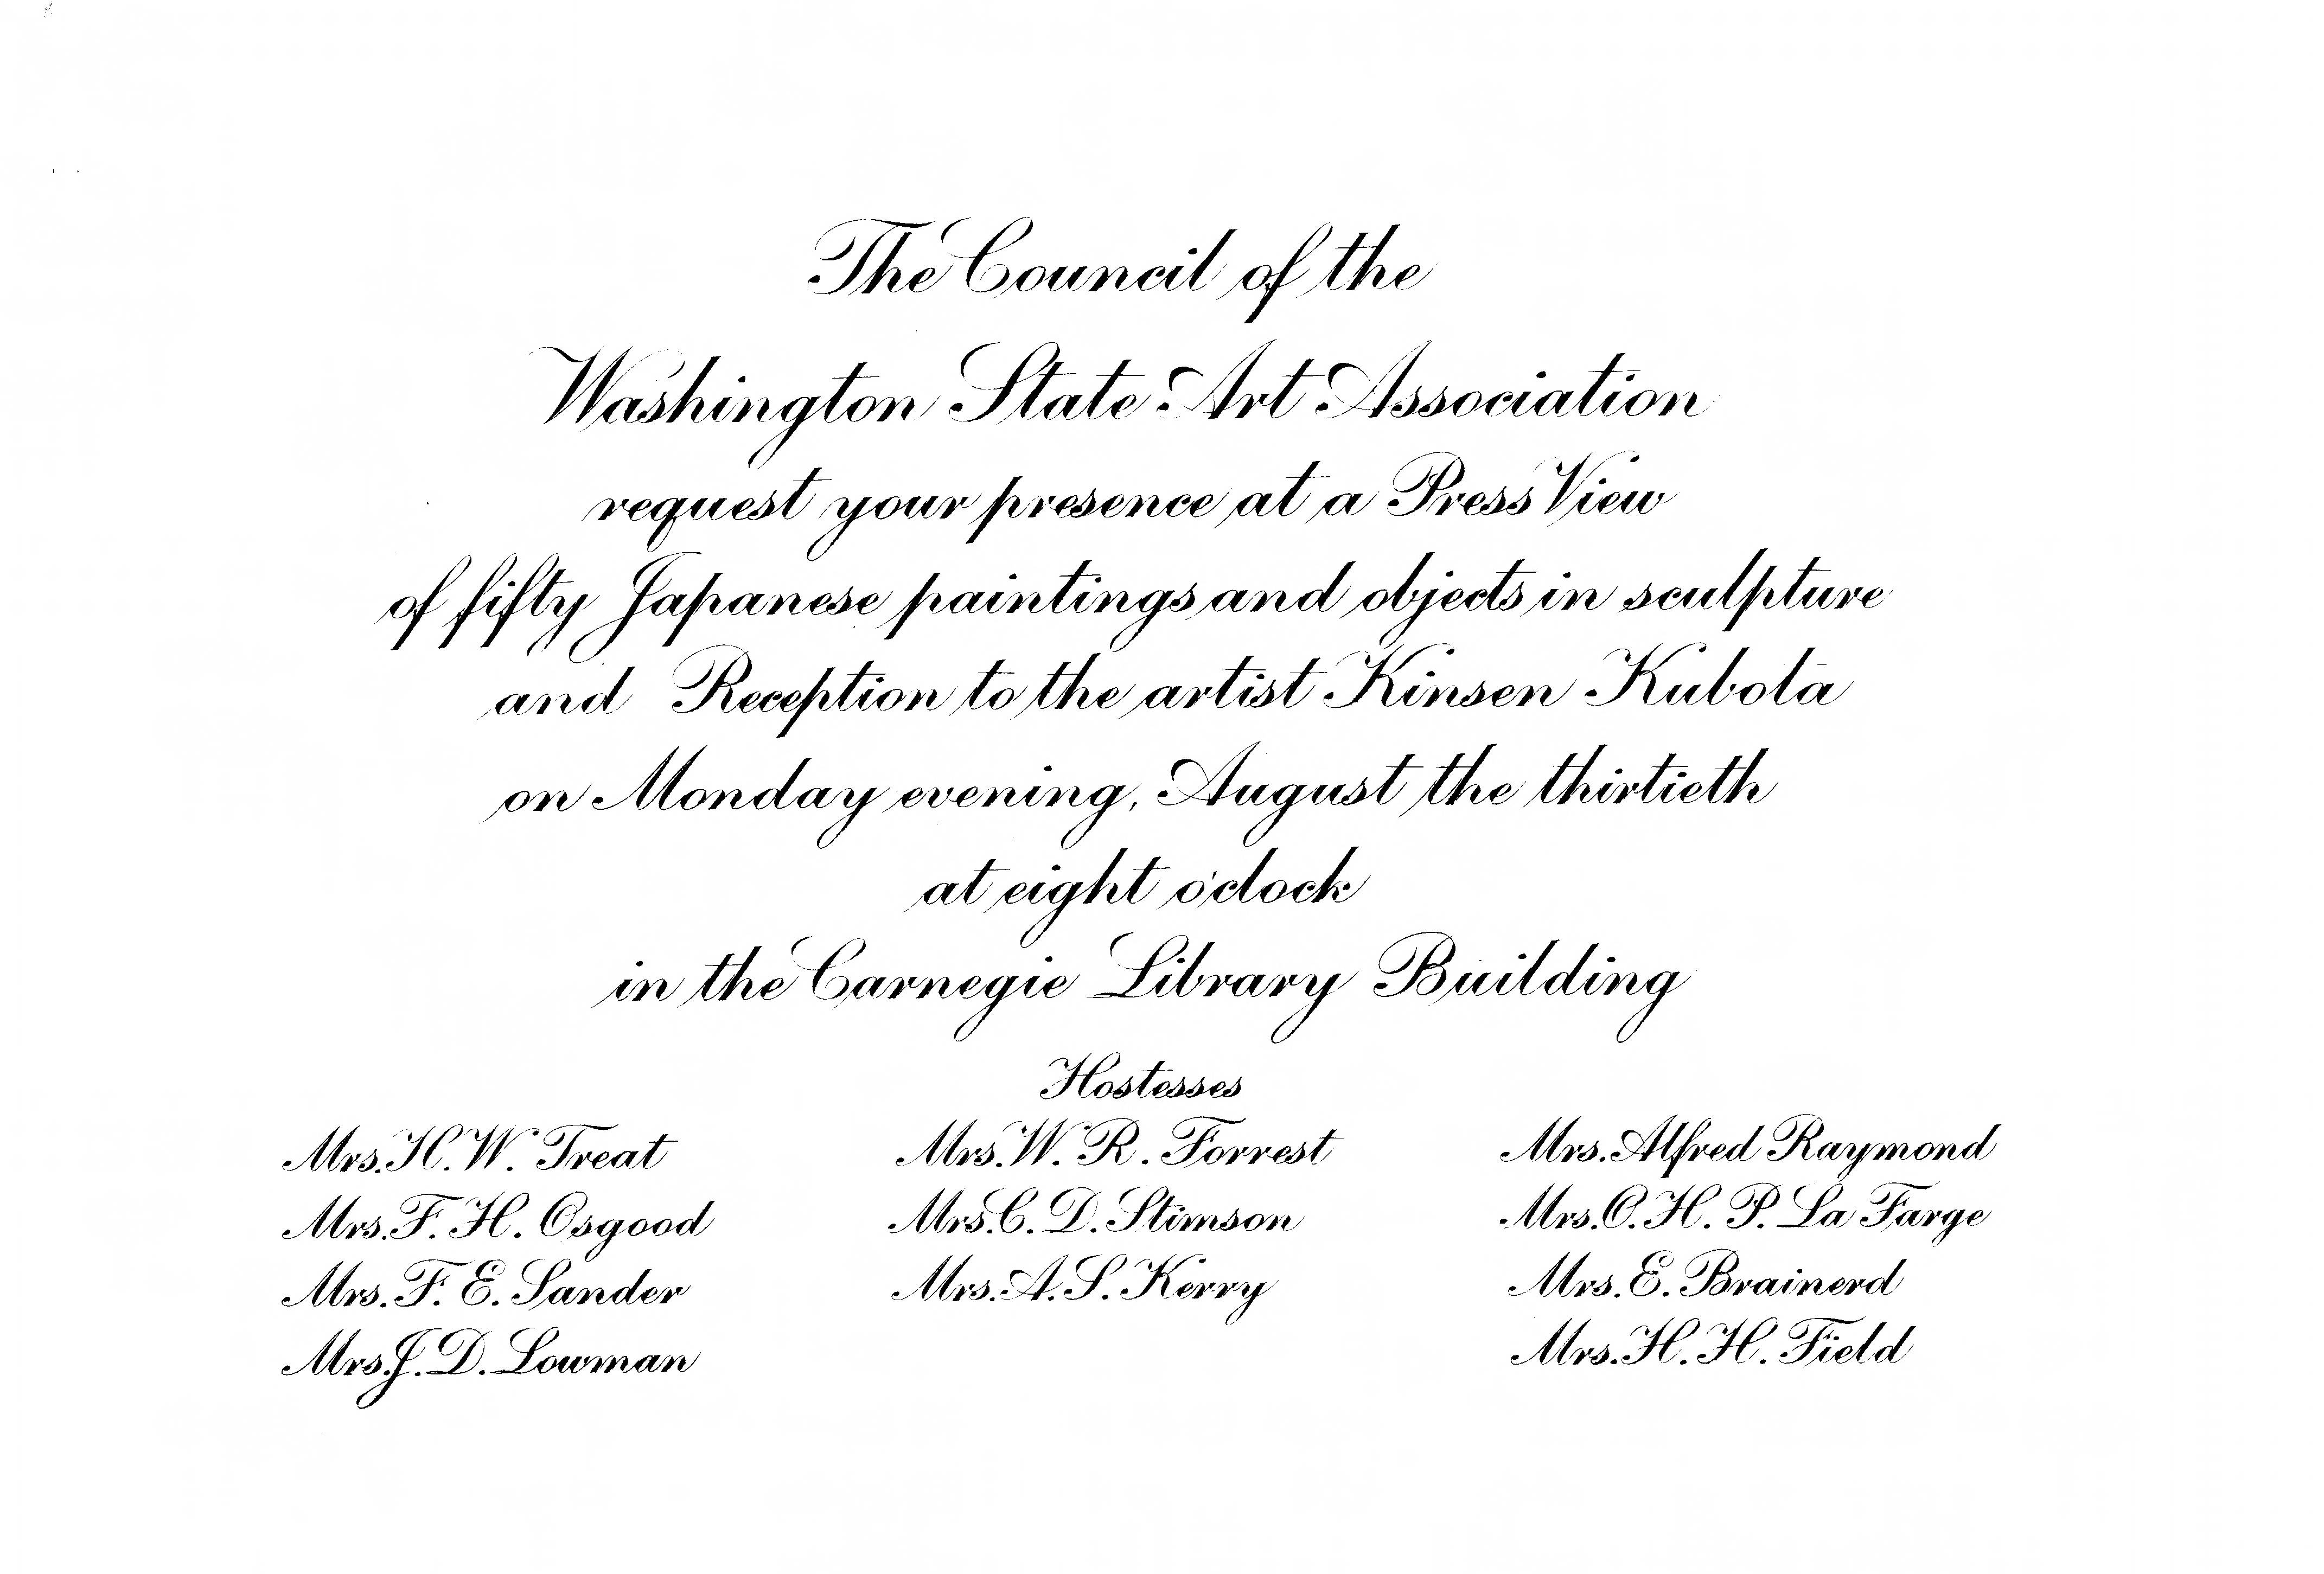 Invitation from the Washington State Art Association to a press viewing of Japanese paintings and sculptures and a reception for artist Kinsen Kubota at the Carnegie Library Building on 13 August 1909